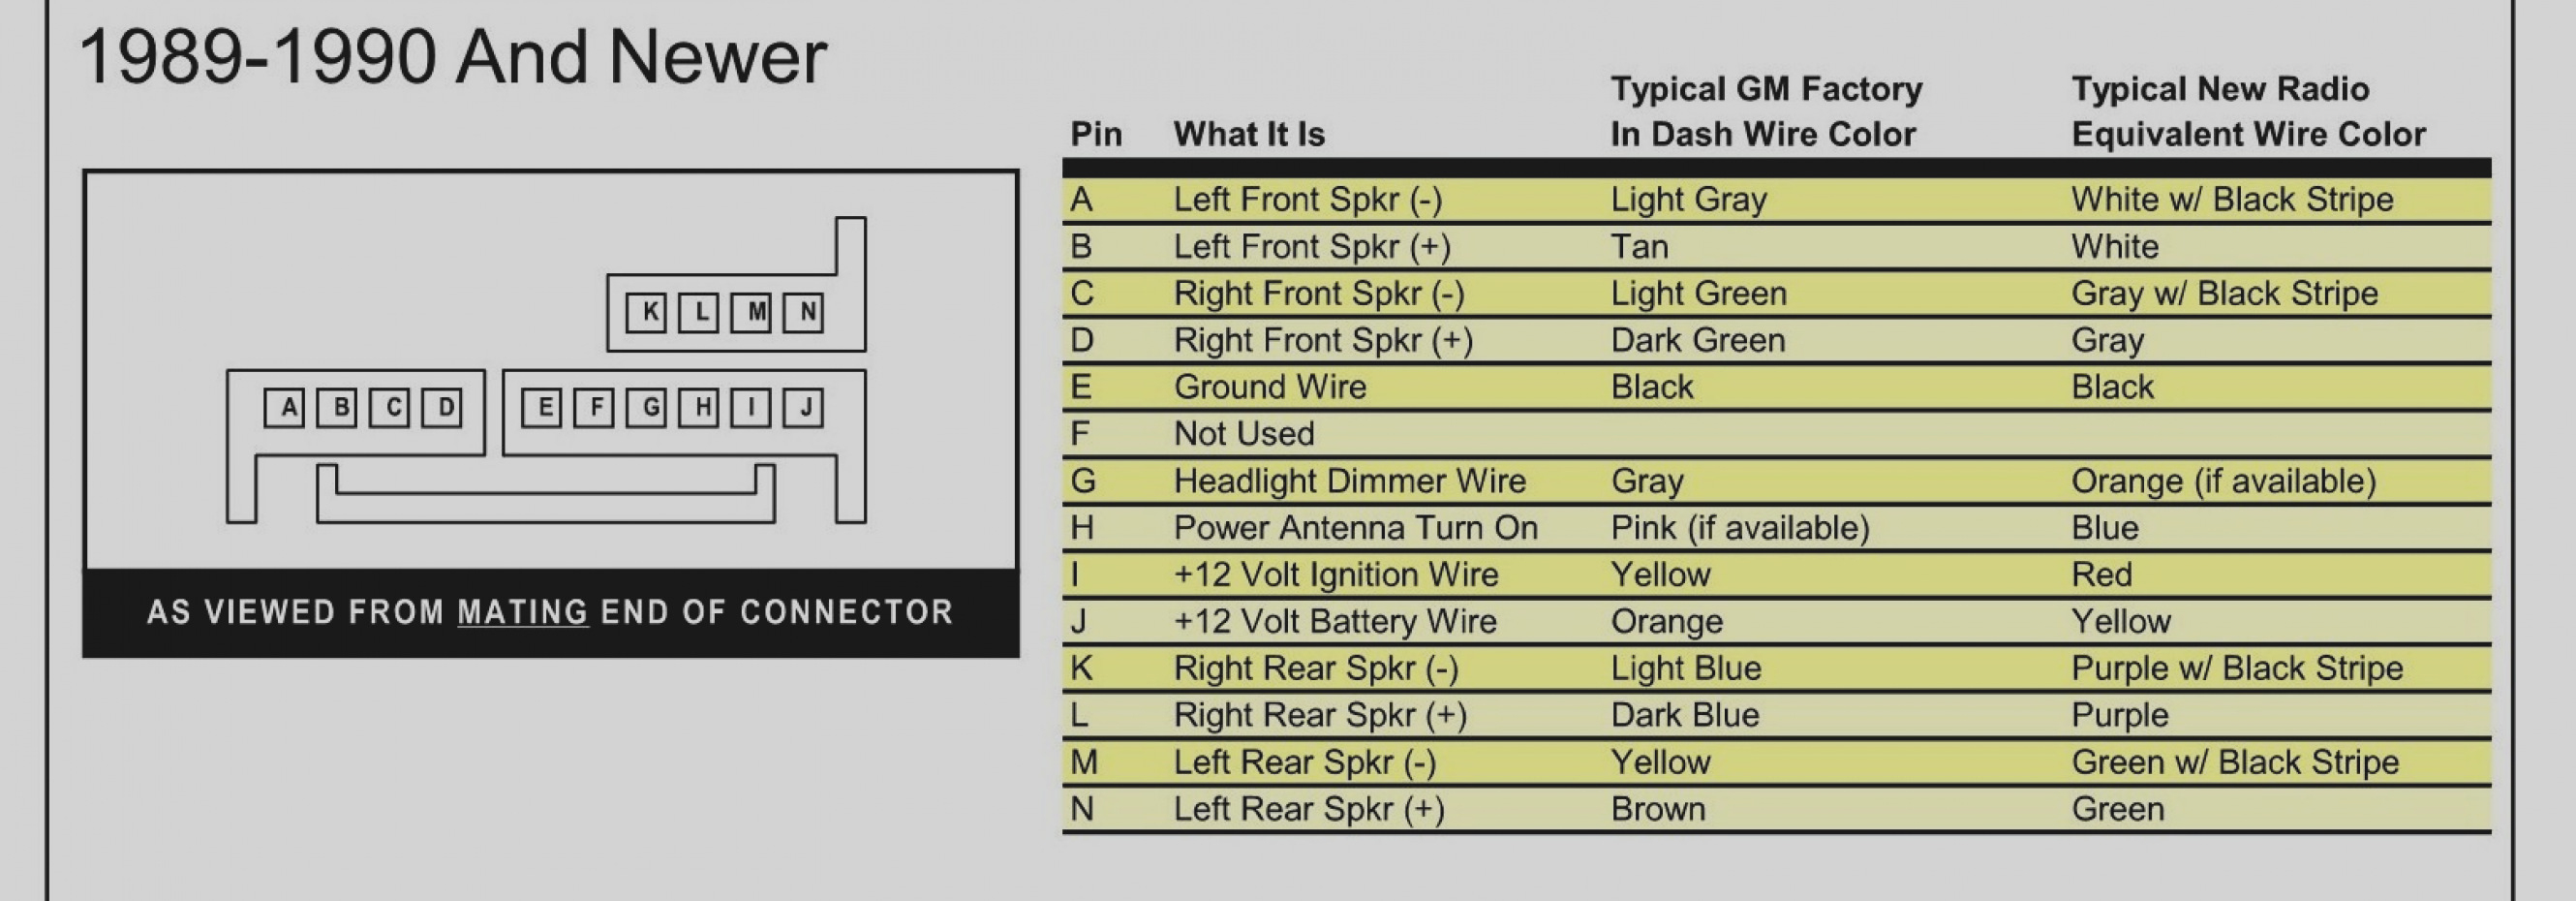 2002 Chevy Tahoe Radio Wiring Diagram Lovely 2 | Hastalavista - 2002 Chevy Tahoe Radio Wiring Diagram